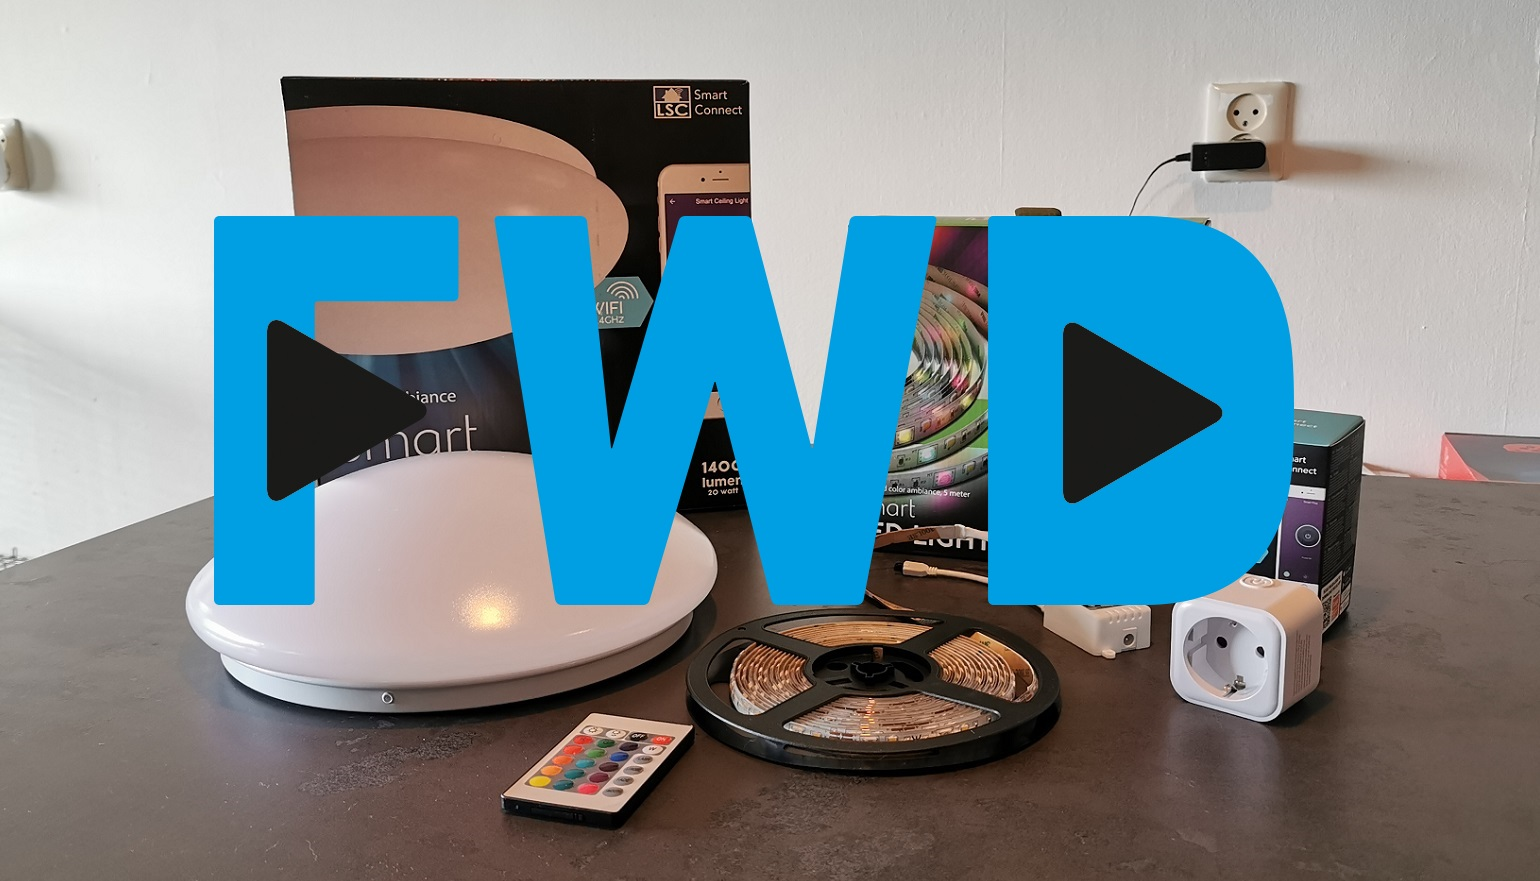 FWD Weekly update: Philips oled-tv en smarthome bij de Action